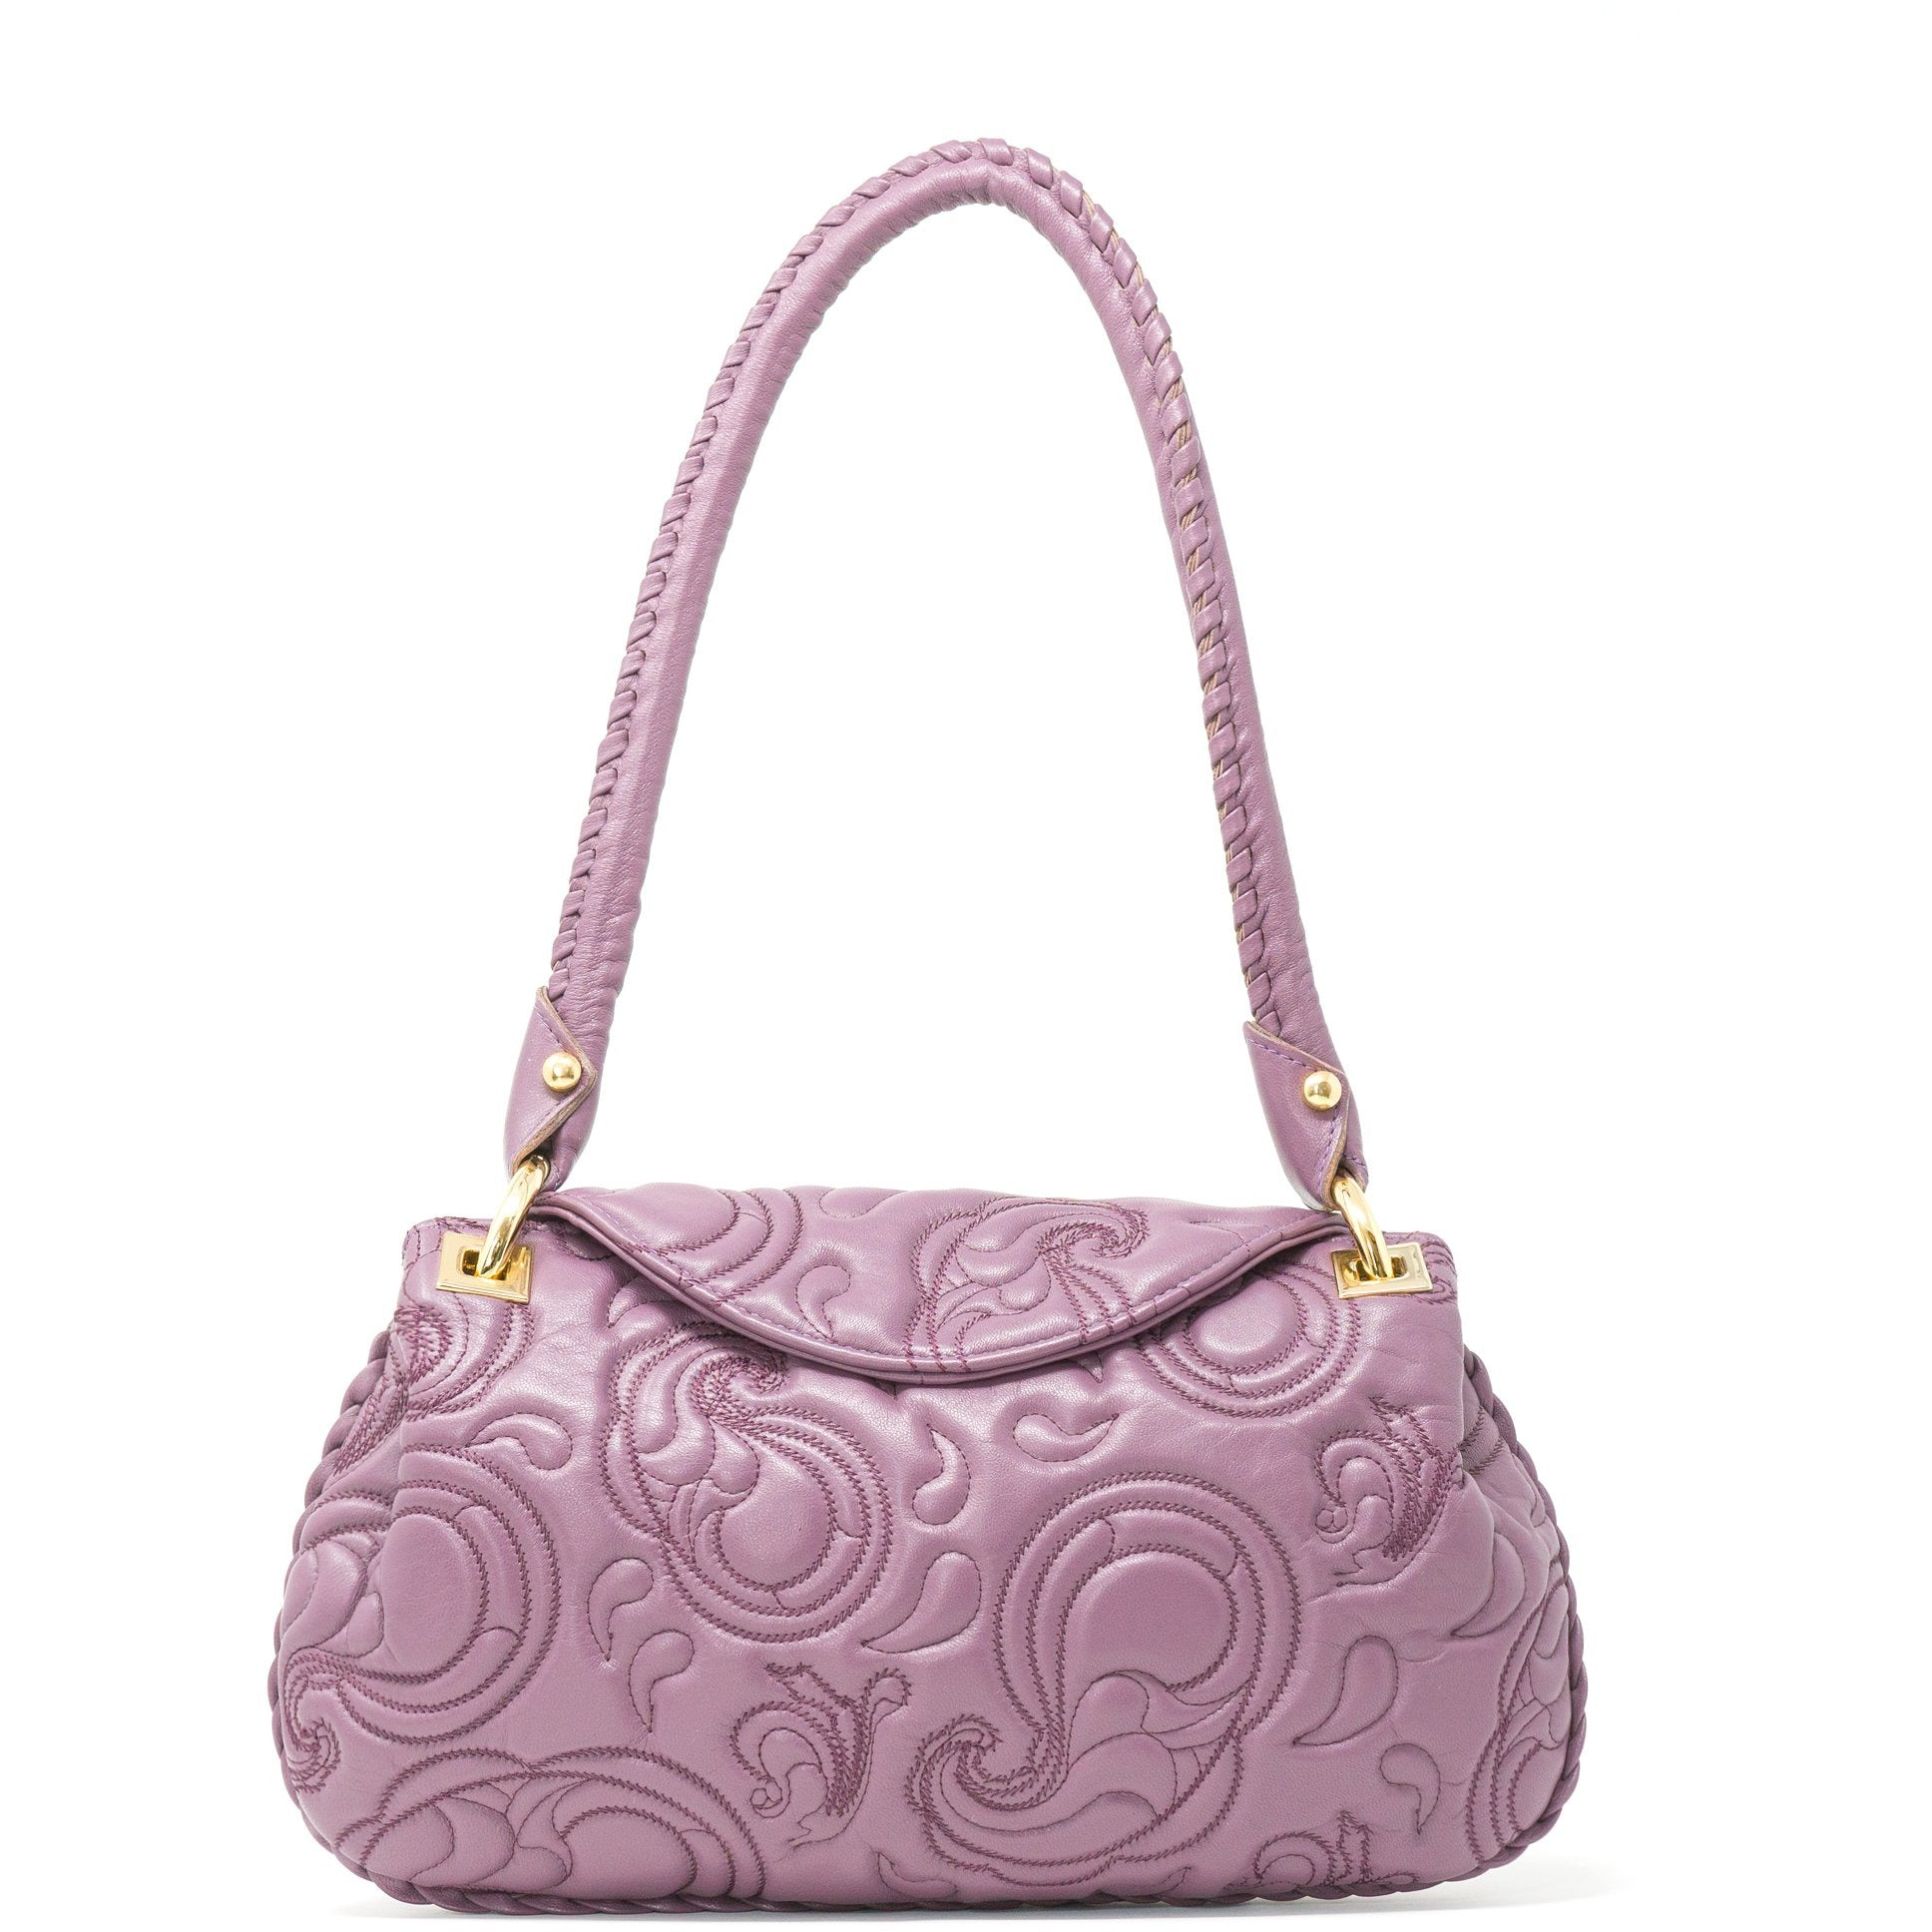 JT012 5023 30 Quilted Pasley Shoulder Bag - New Spring Summer 2020 Collection